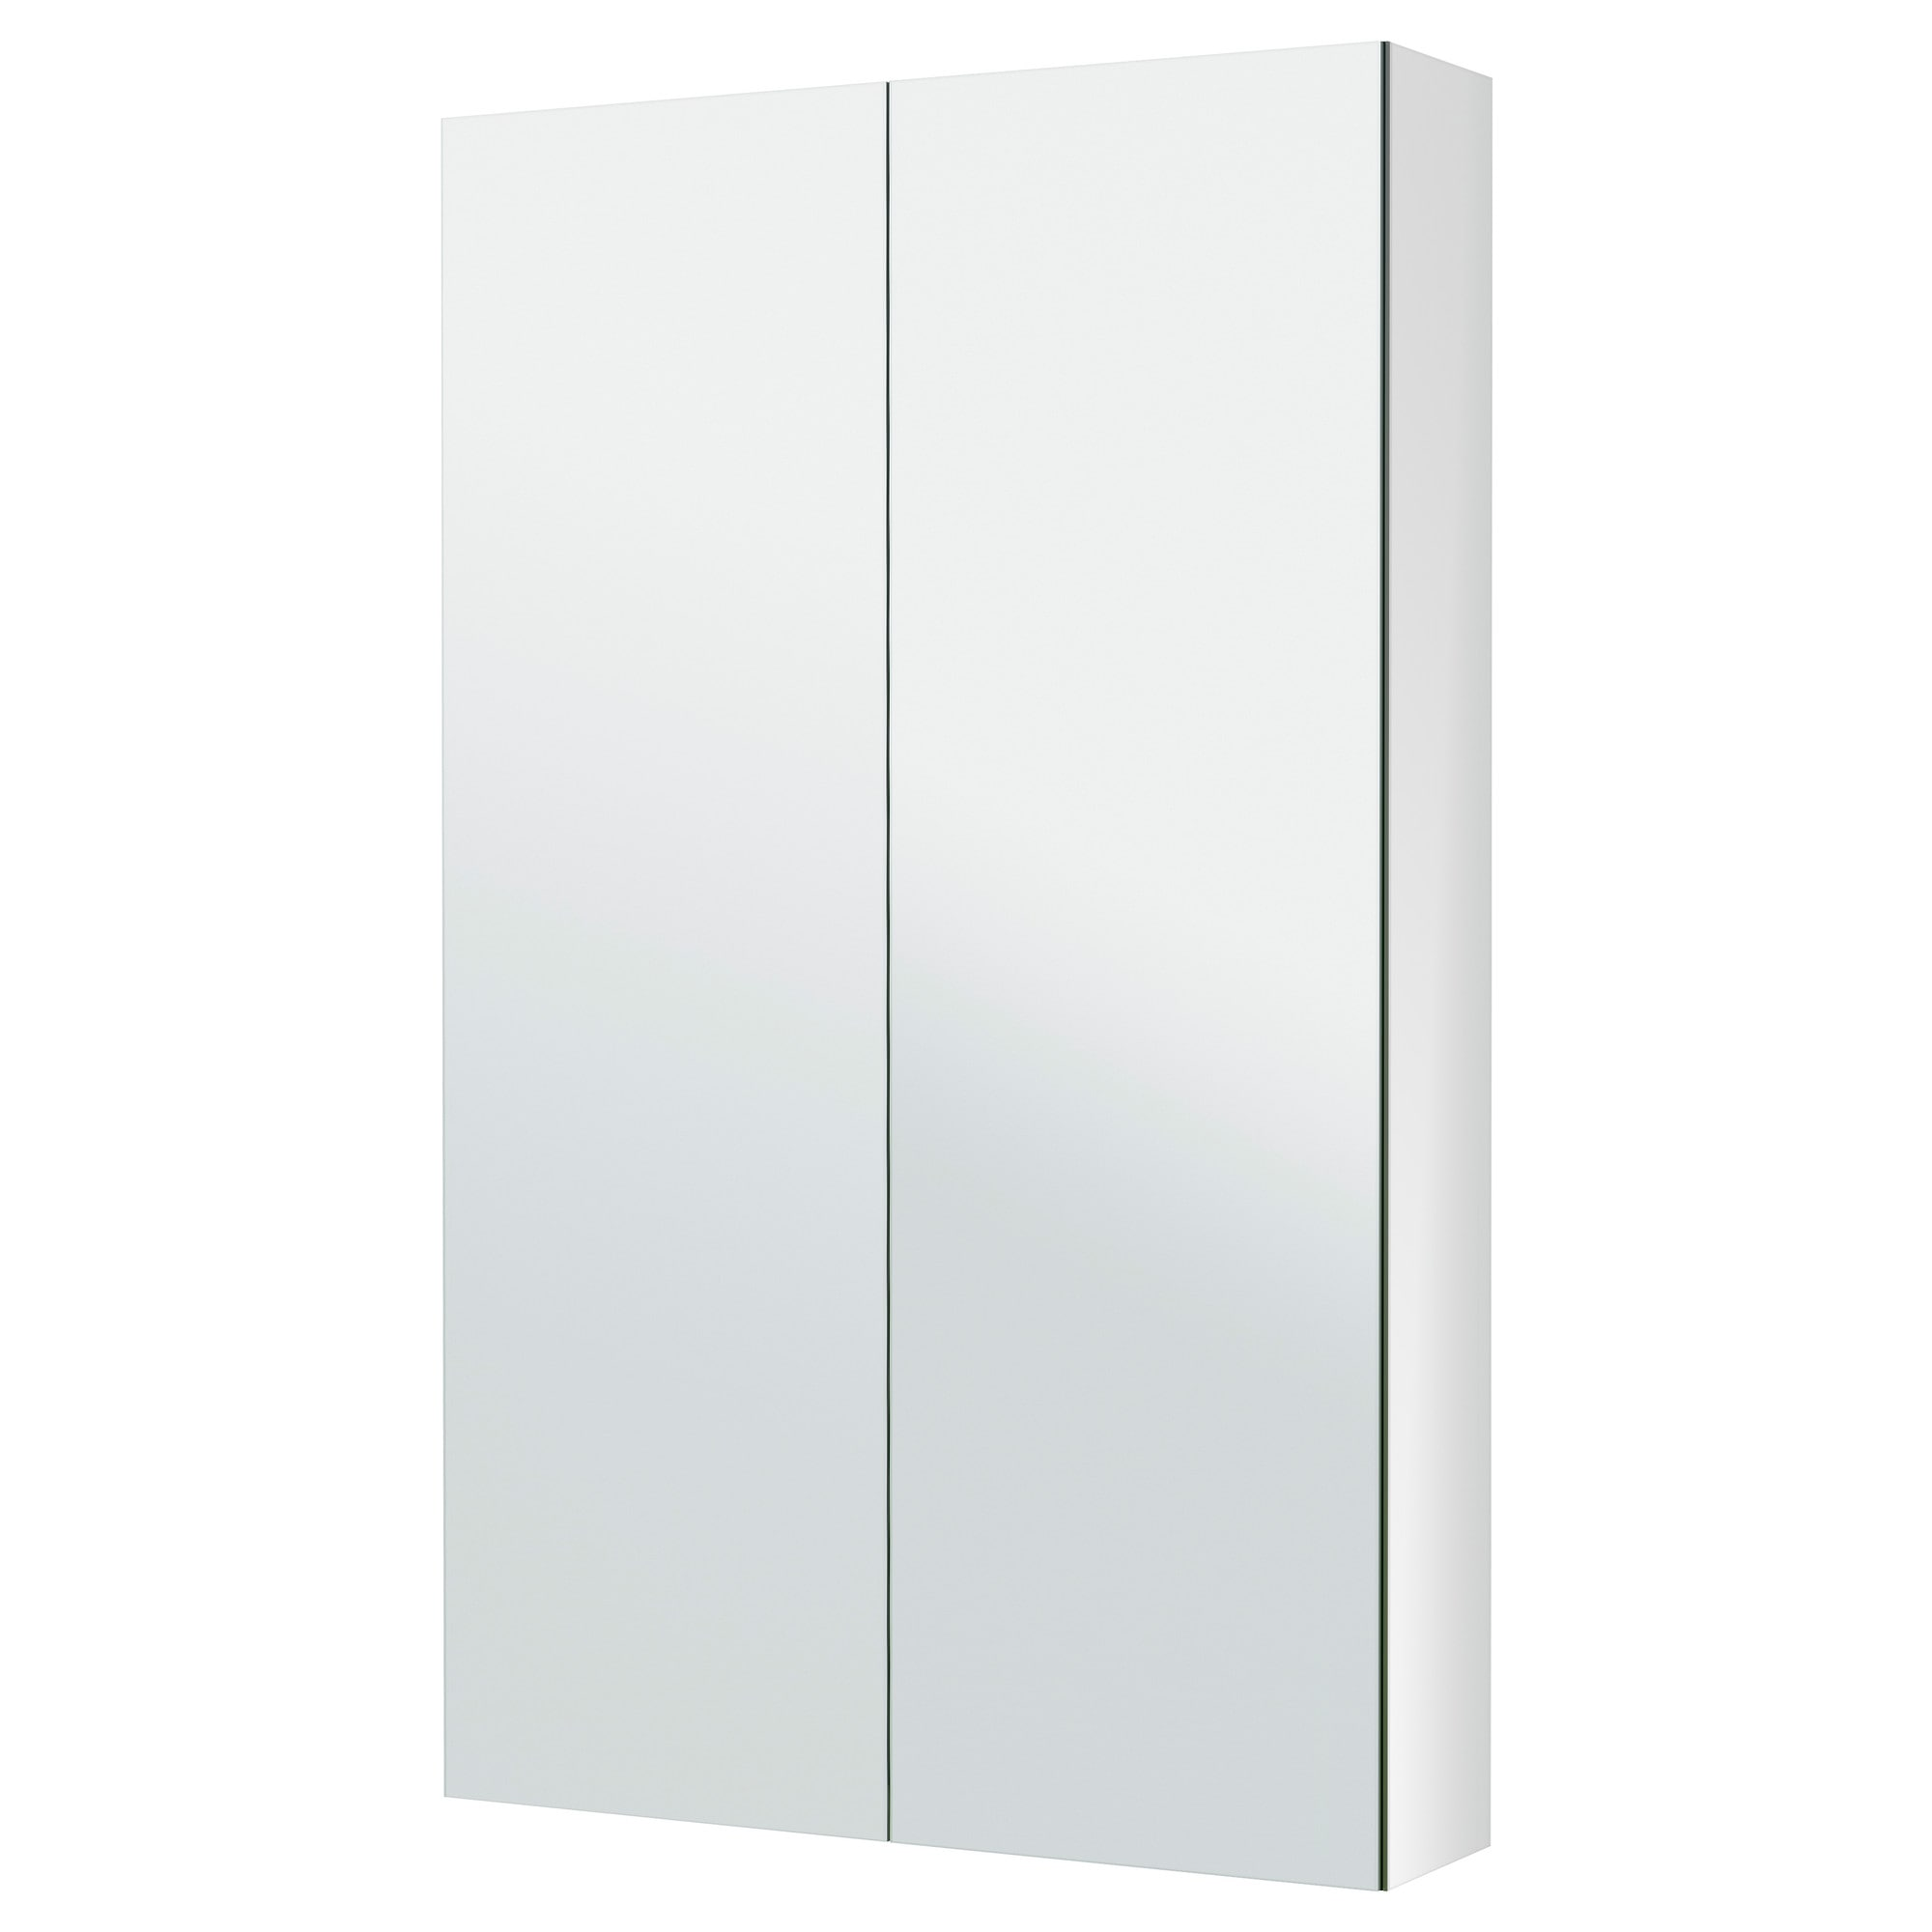 Tall Bathroom Cabinets With Mirror Cabinet Category : 0089101PE220919S5 from stufing.com size 2000 x 2000 jpeg 119kB